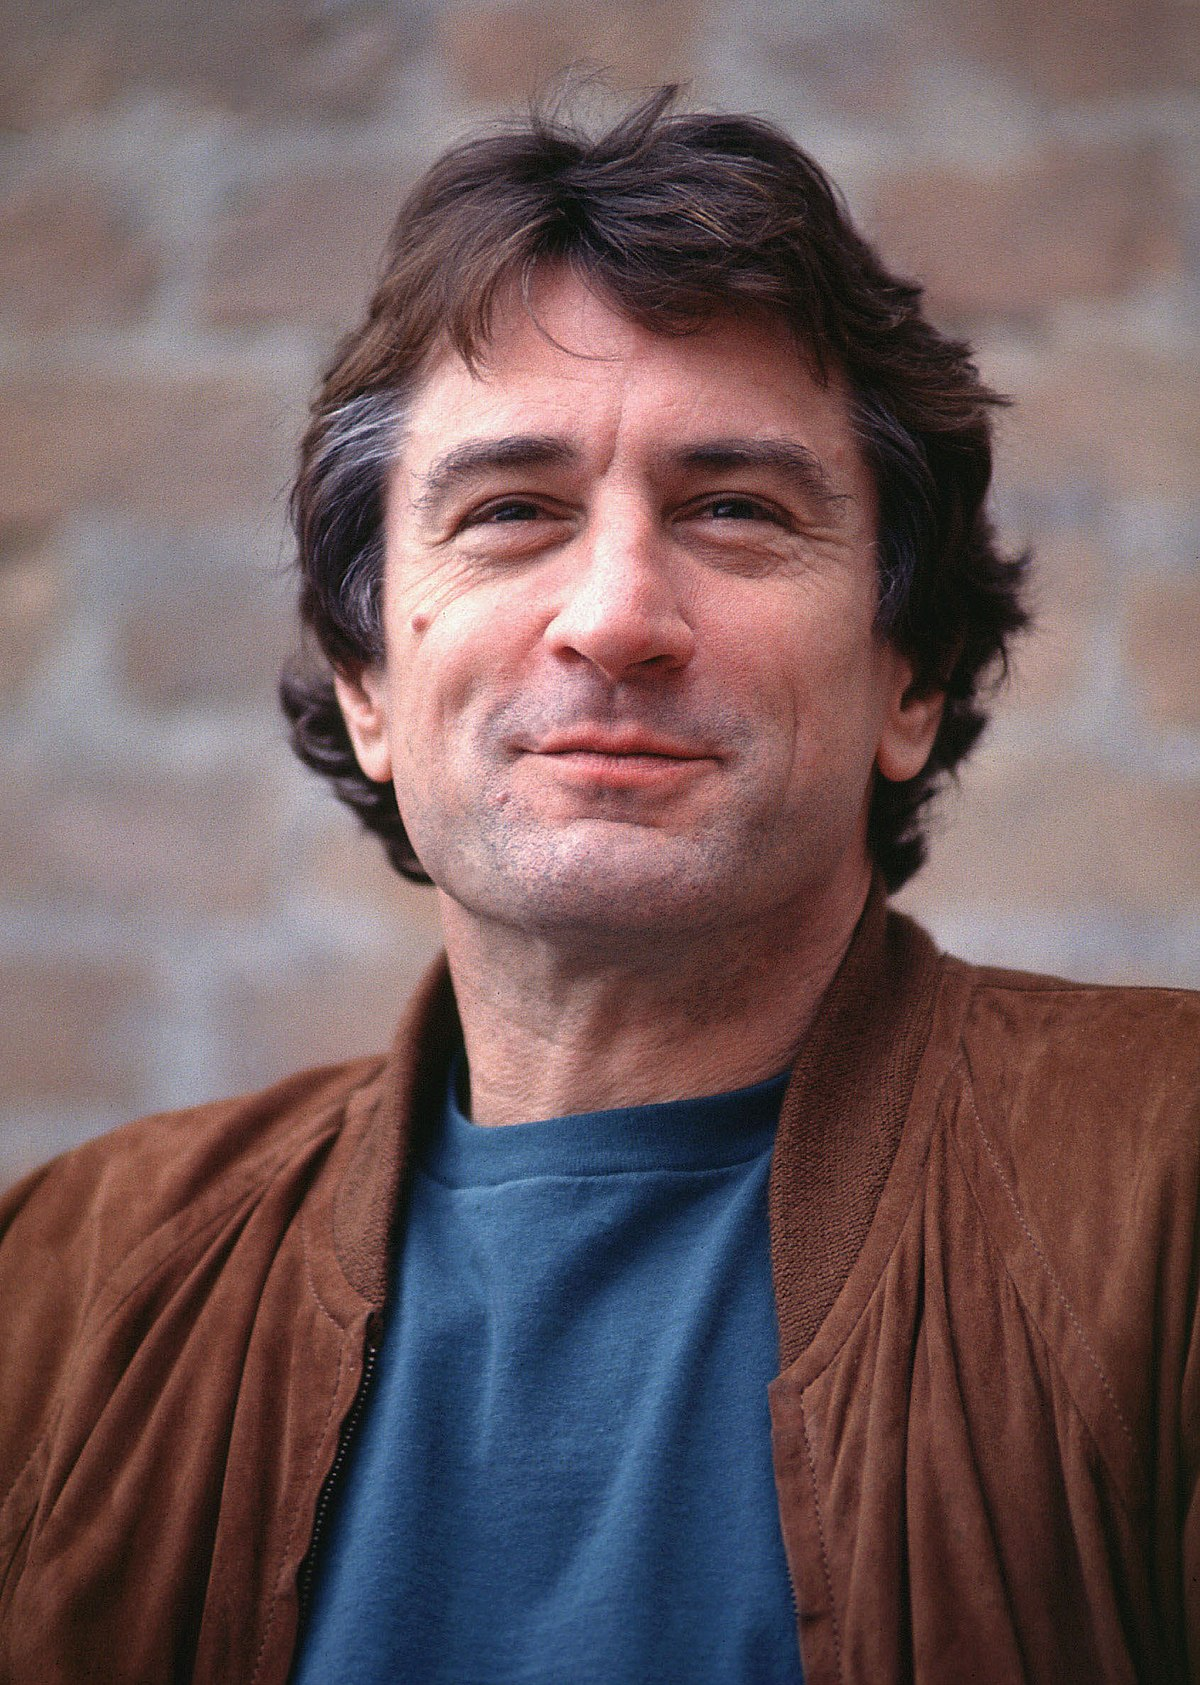 Robert De Niro Film 2021